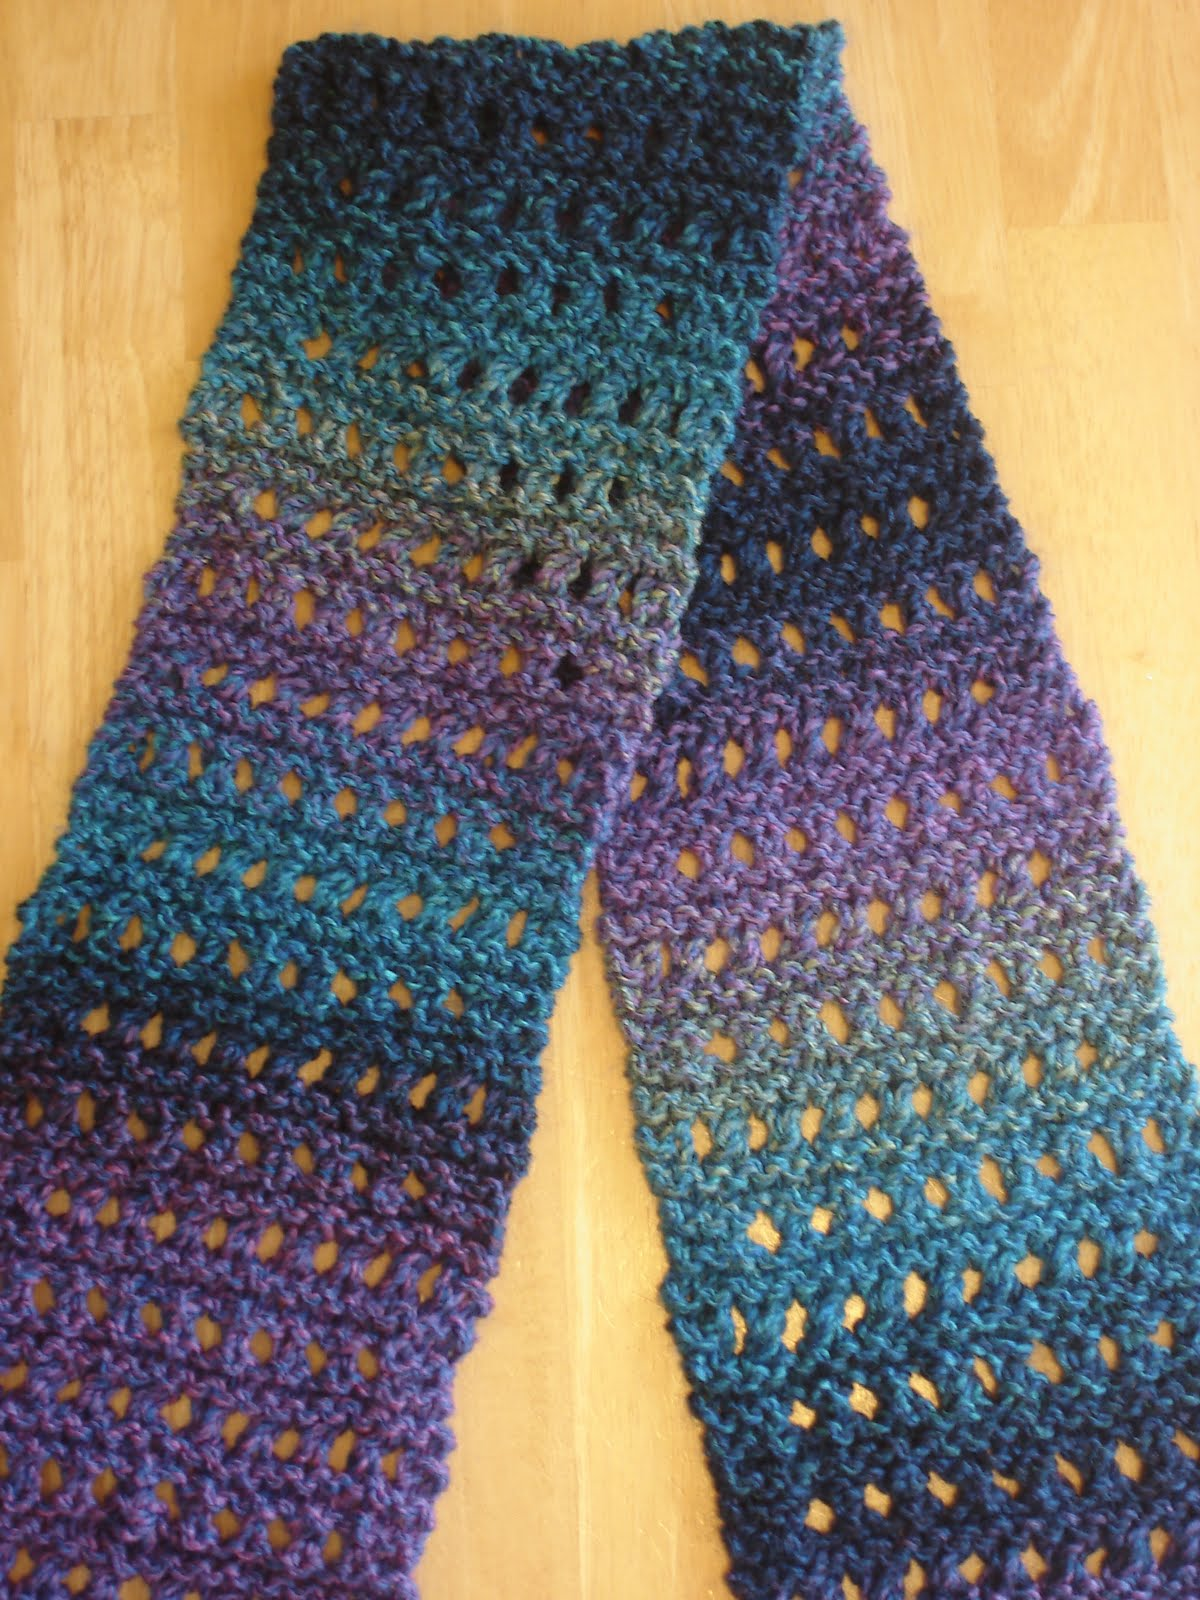 Free Knitting Patterns For Scarves For Beginners : Fiber Flux: Free Knitting Pattern: Tweedy Eyelet Scarf!